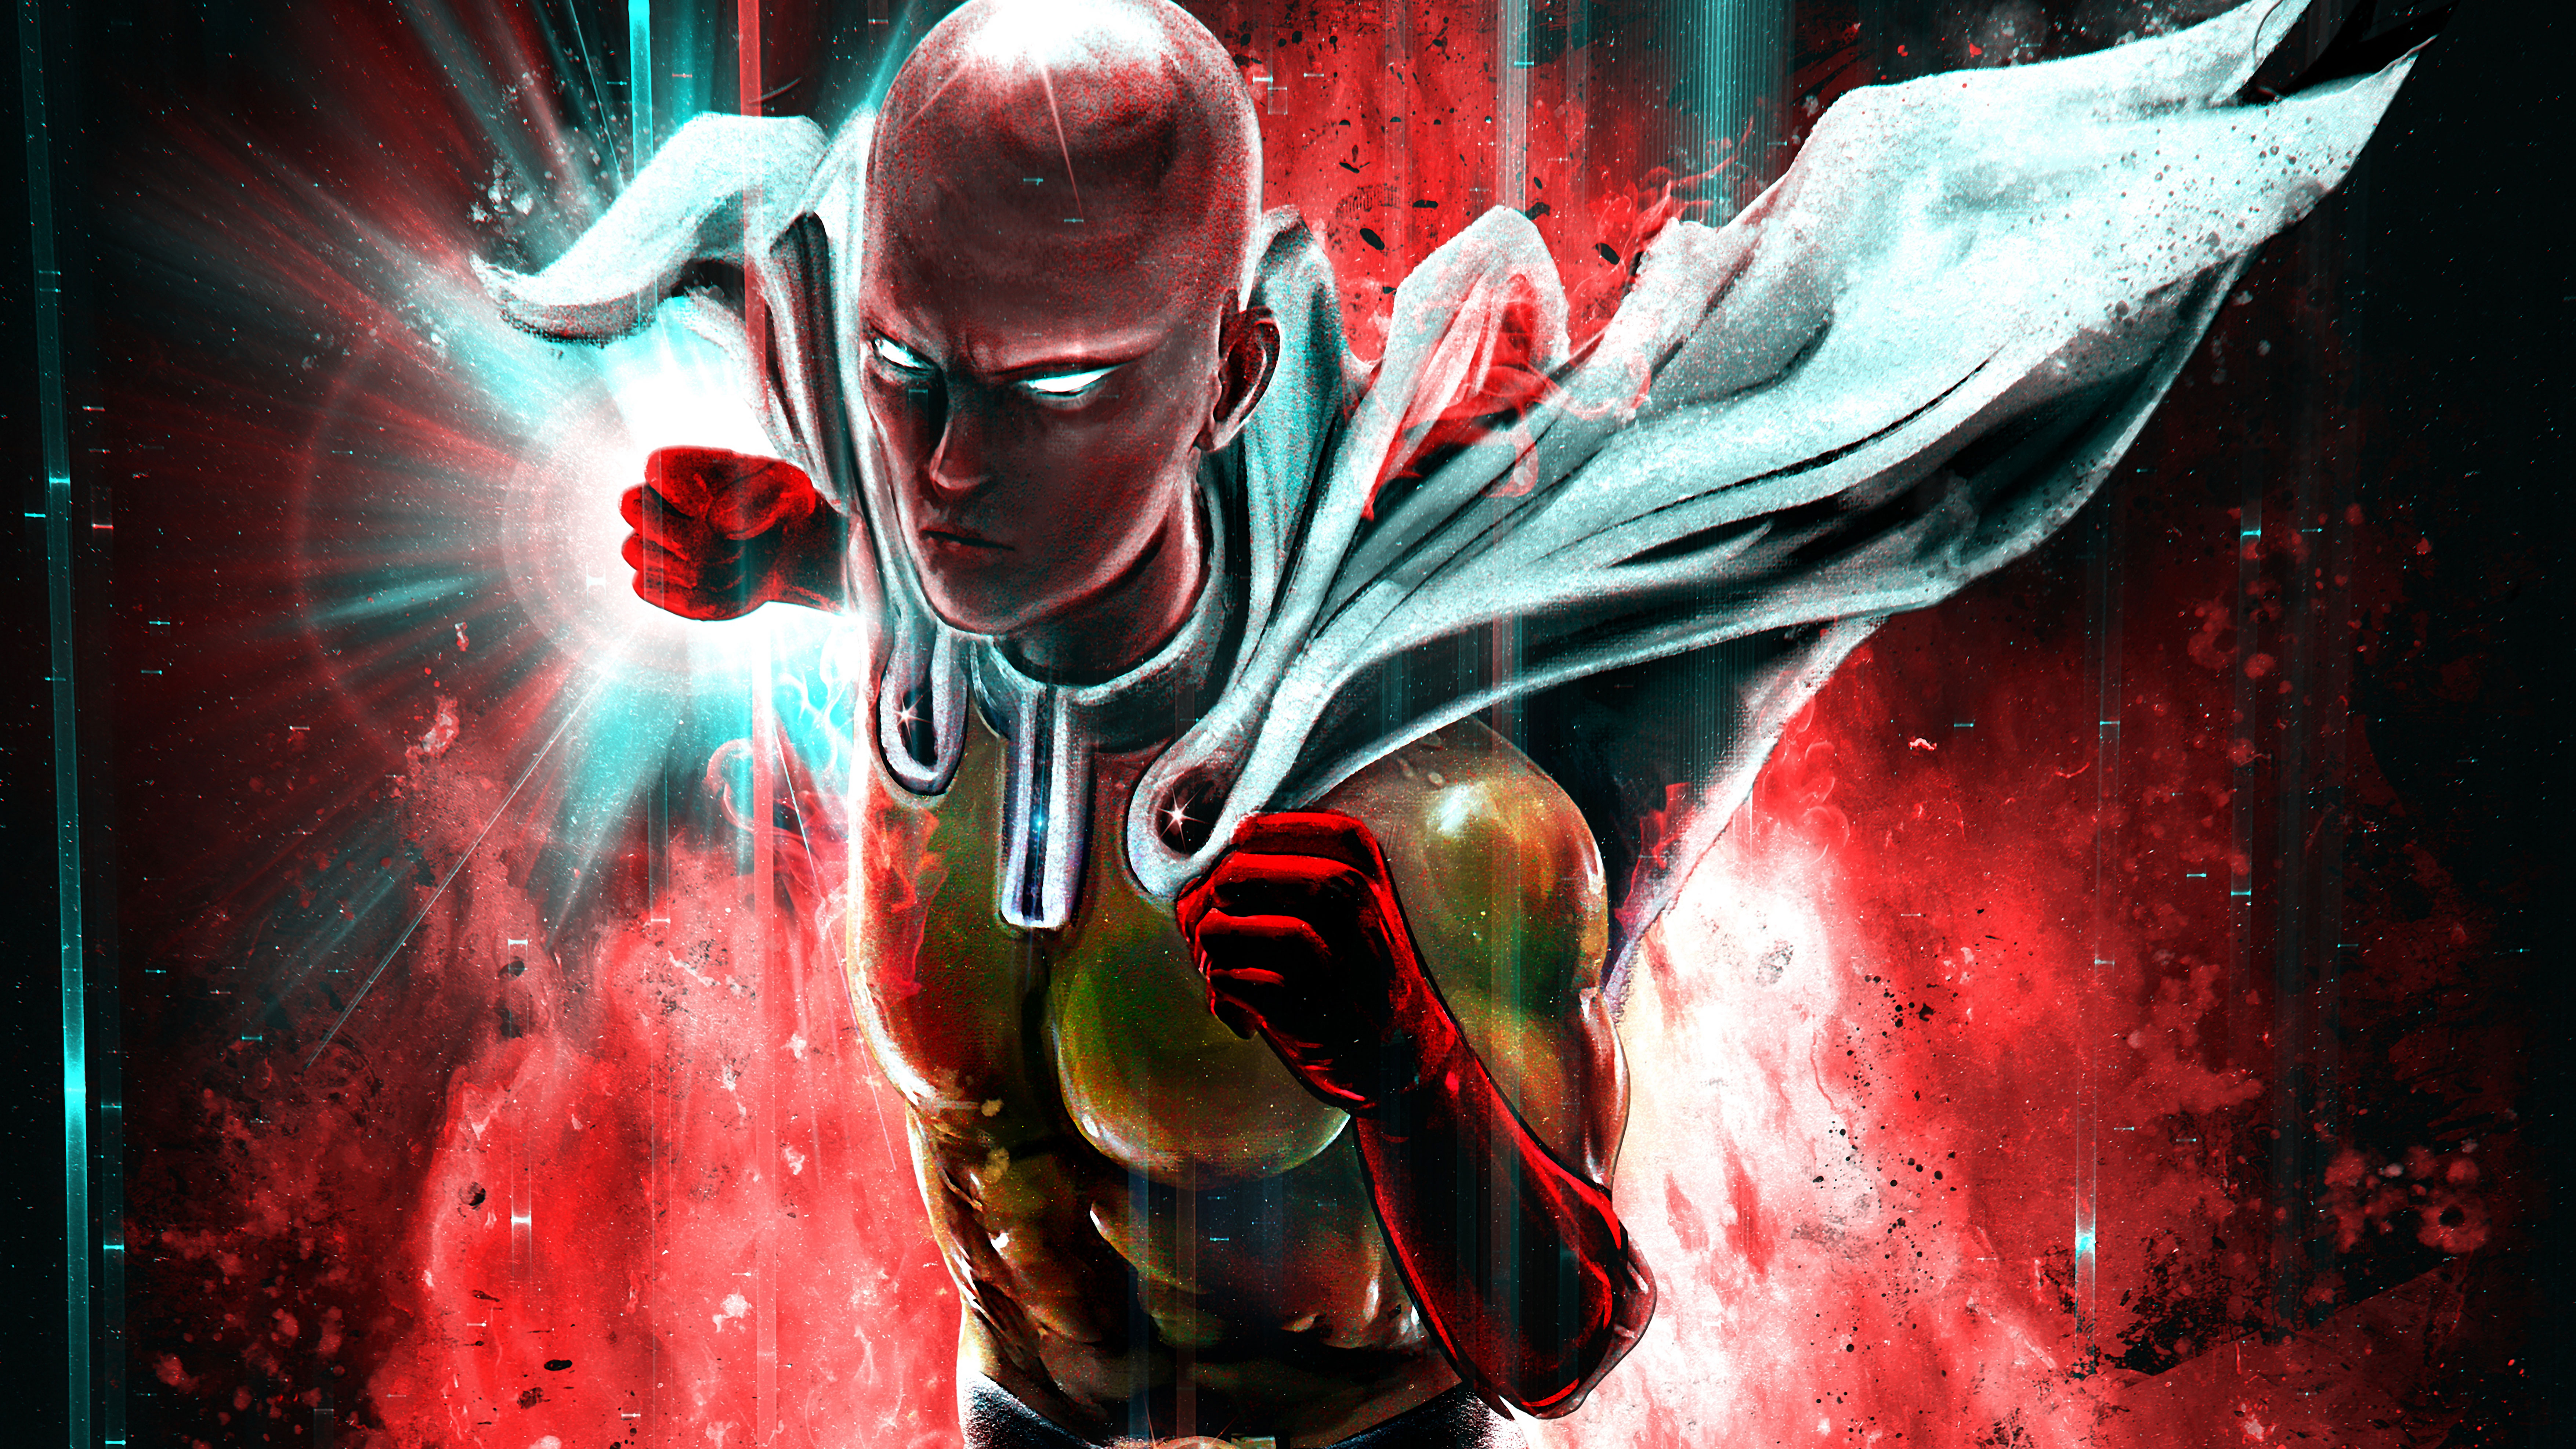 One Punch Man 8k Hd Anime 4k Wallpapers Images